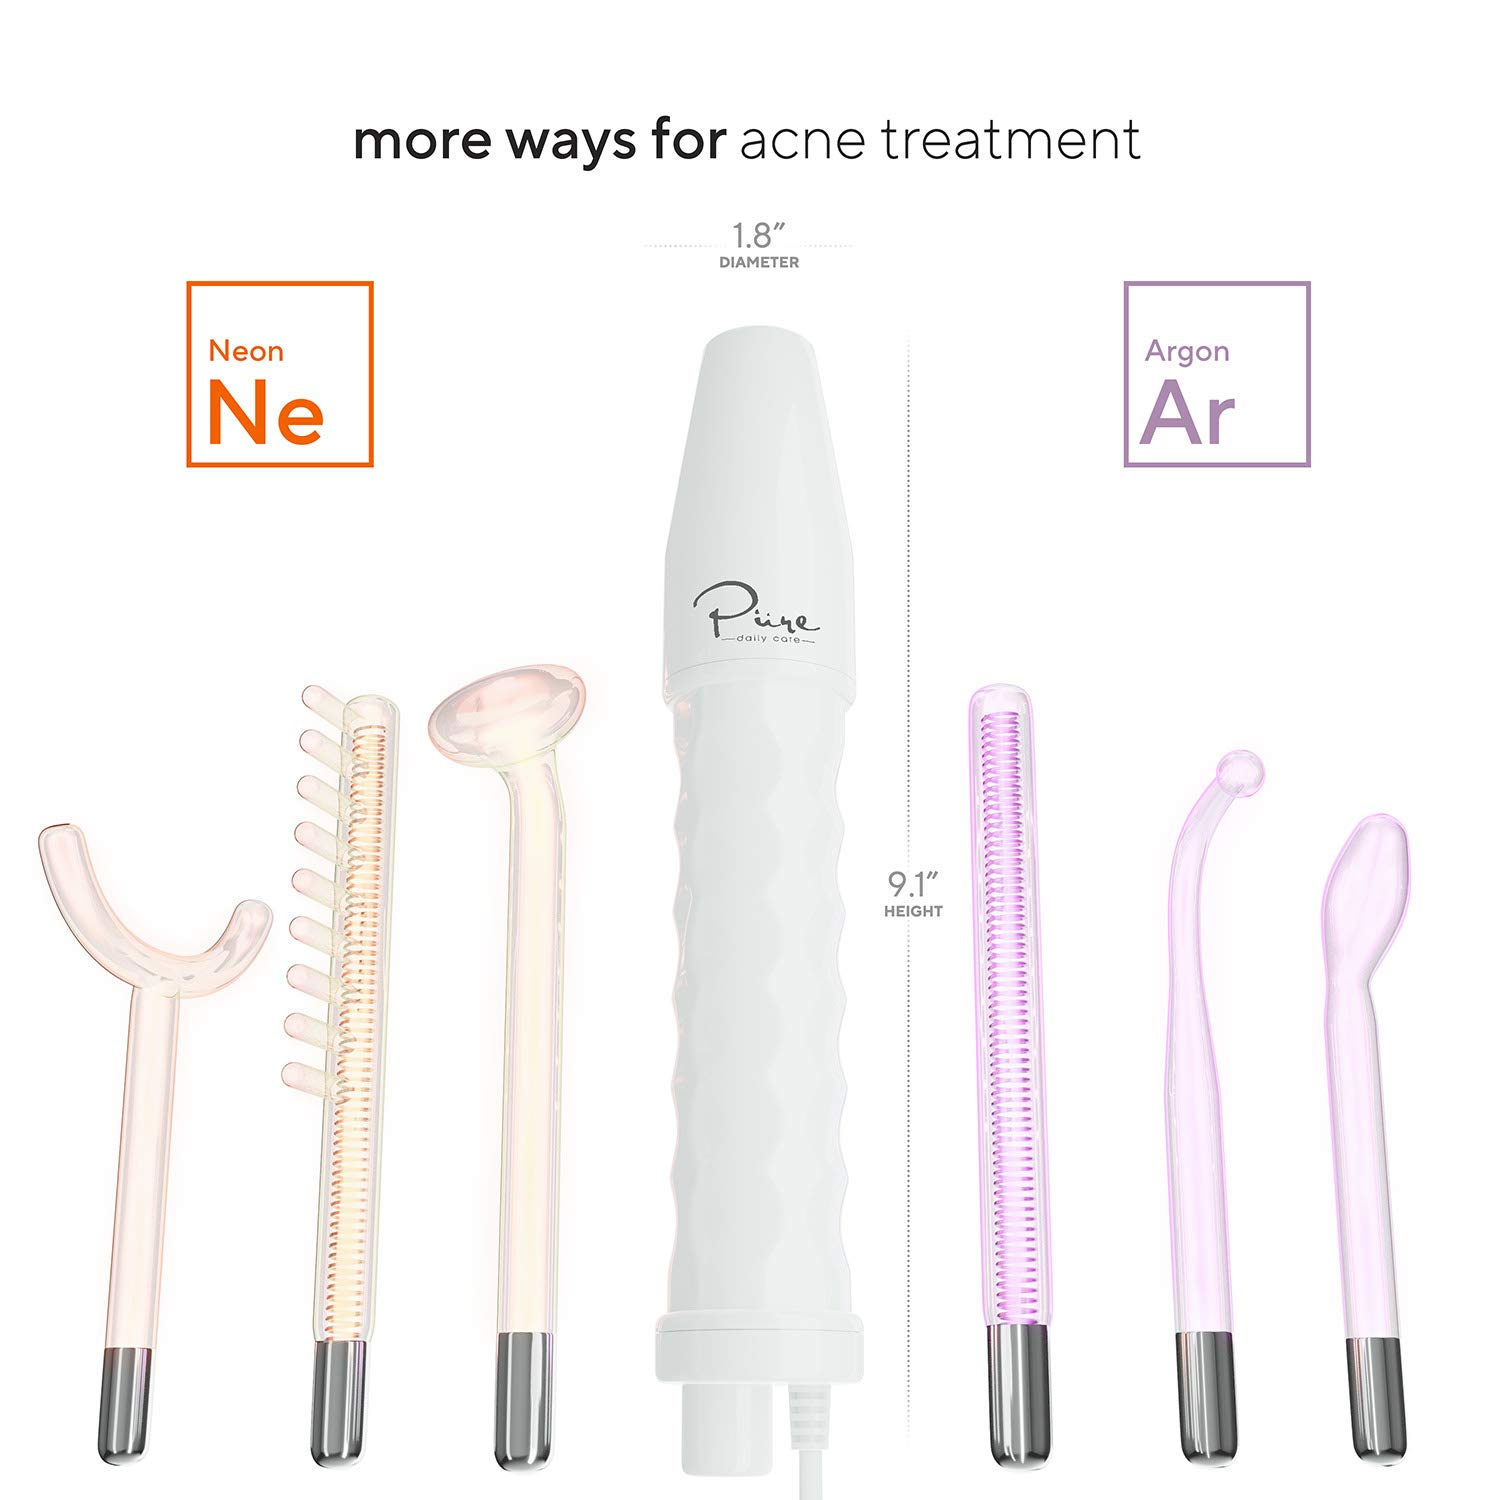 NuDerma Professional Skin Therapy Wand - Portable Handheld High Frequency Skin Therapy Machine with 6 Neon & Argon Wands - Acne Treatment - Skin Tightening - Wrinkle Reducing – Facial Skin Lifter: Beauty